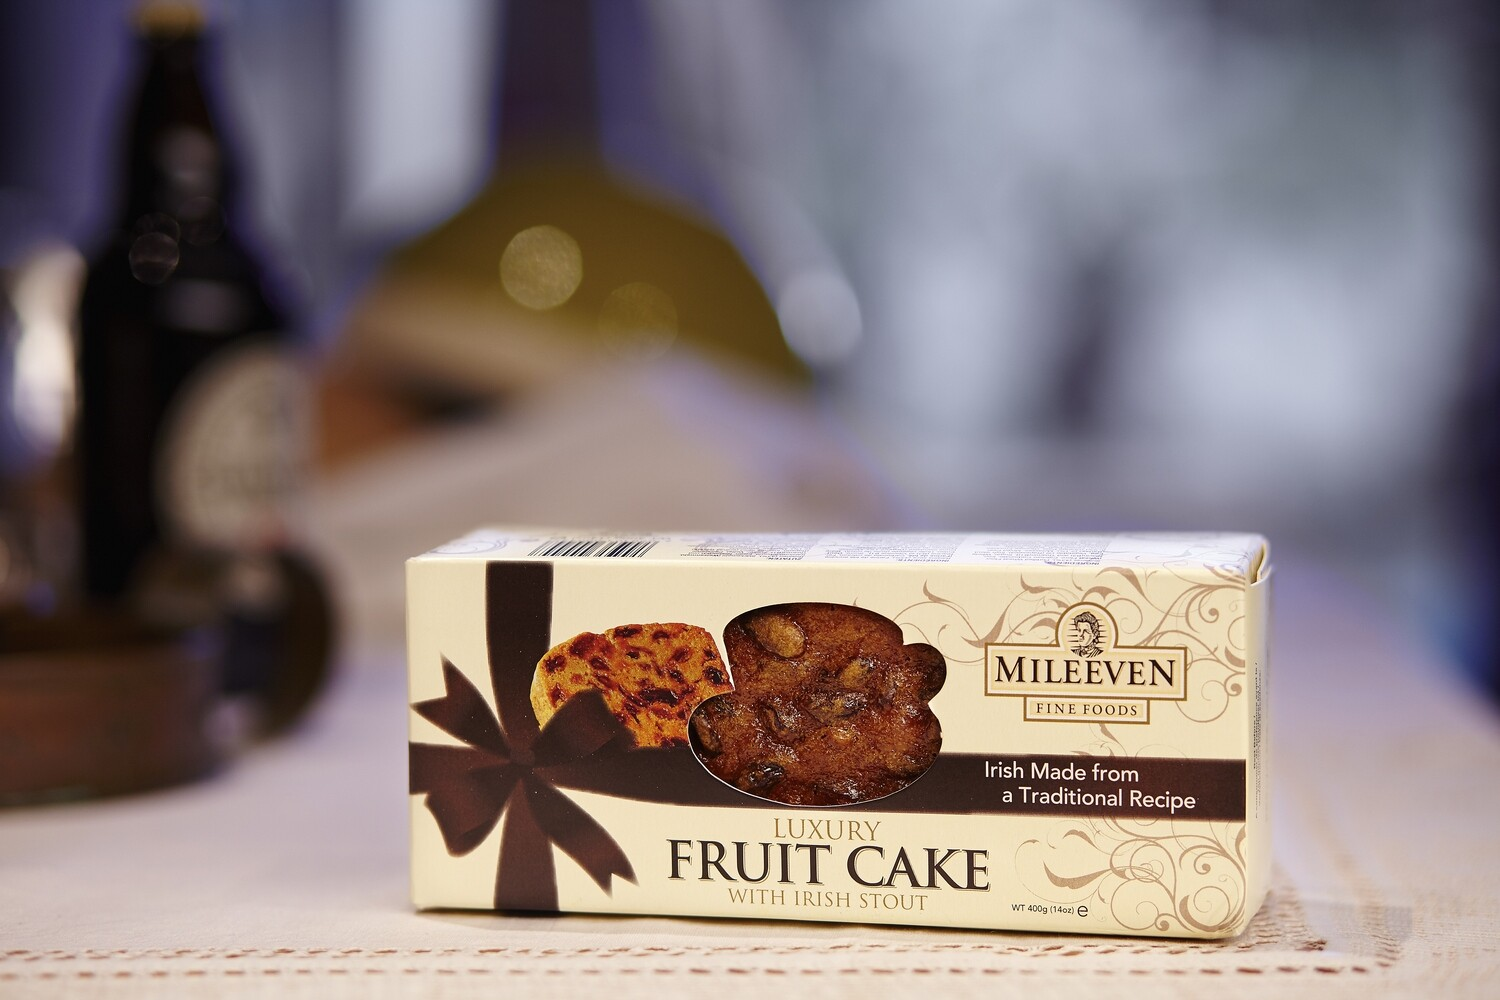 Mileeven Luxury Fruit Cake with Irish Stout